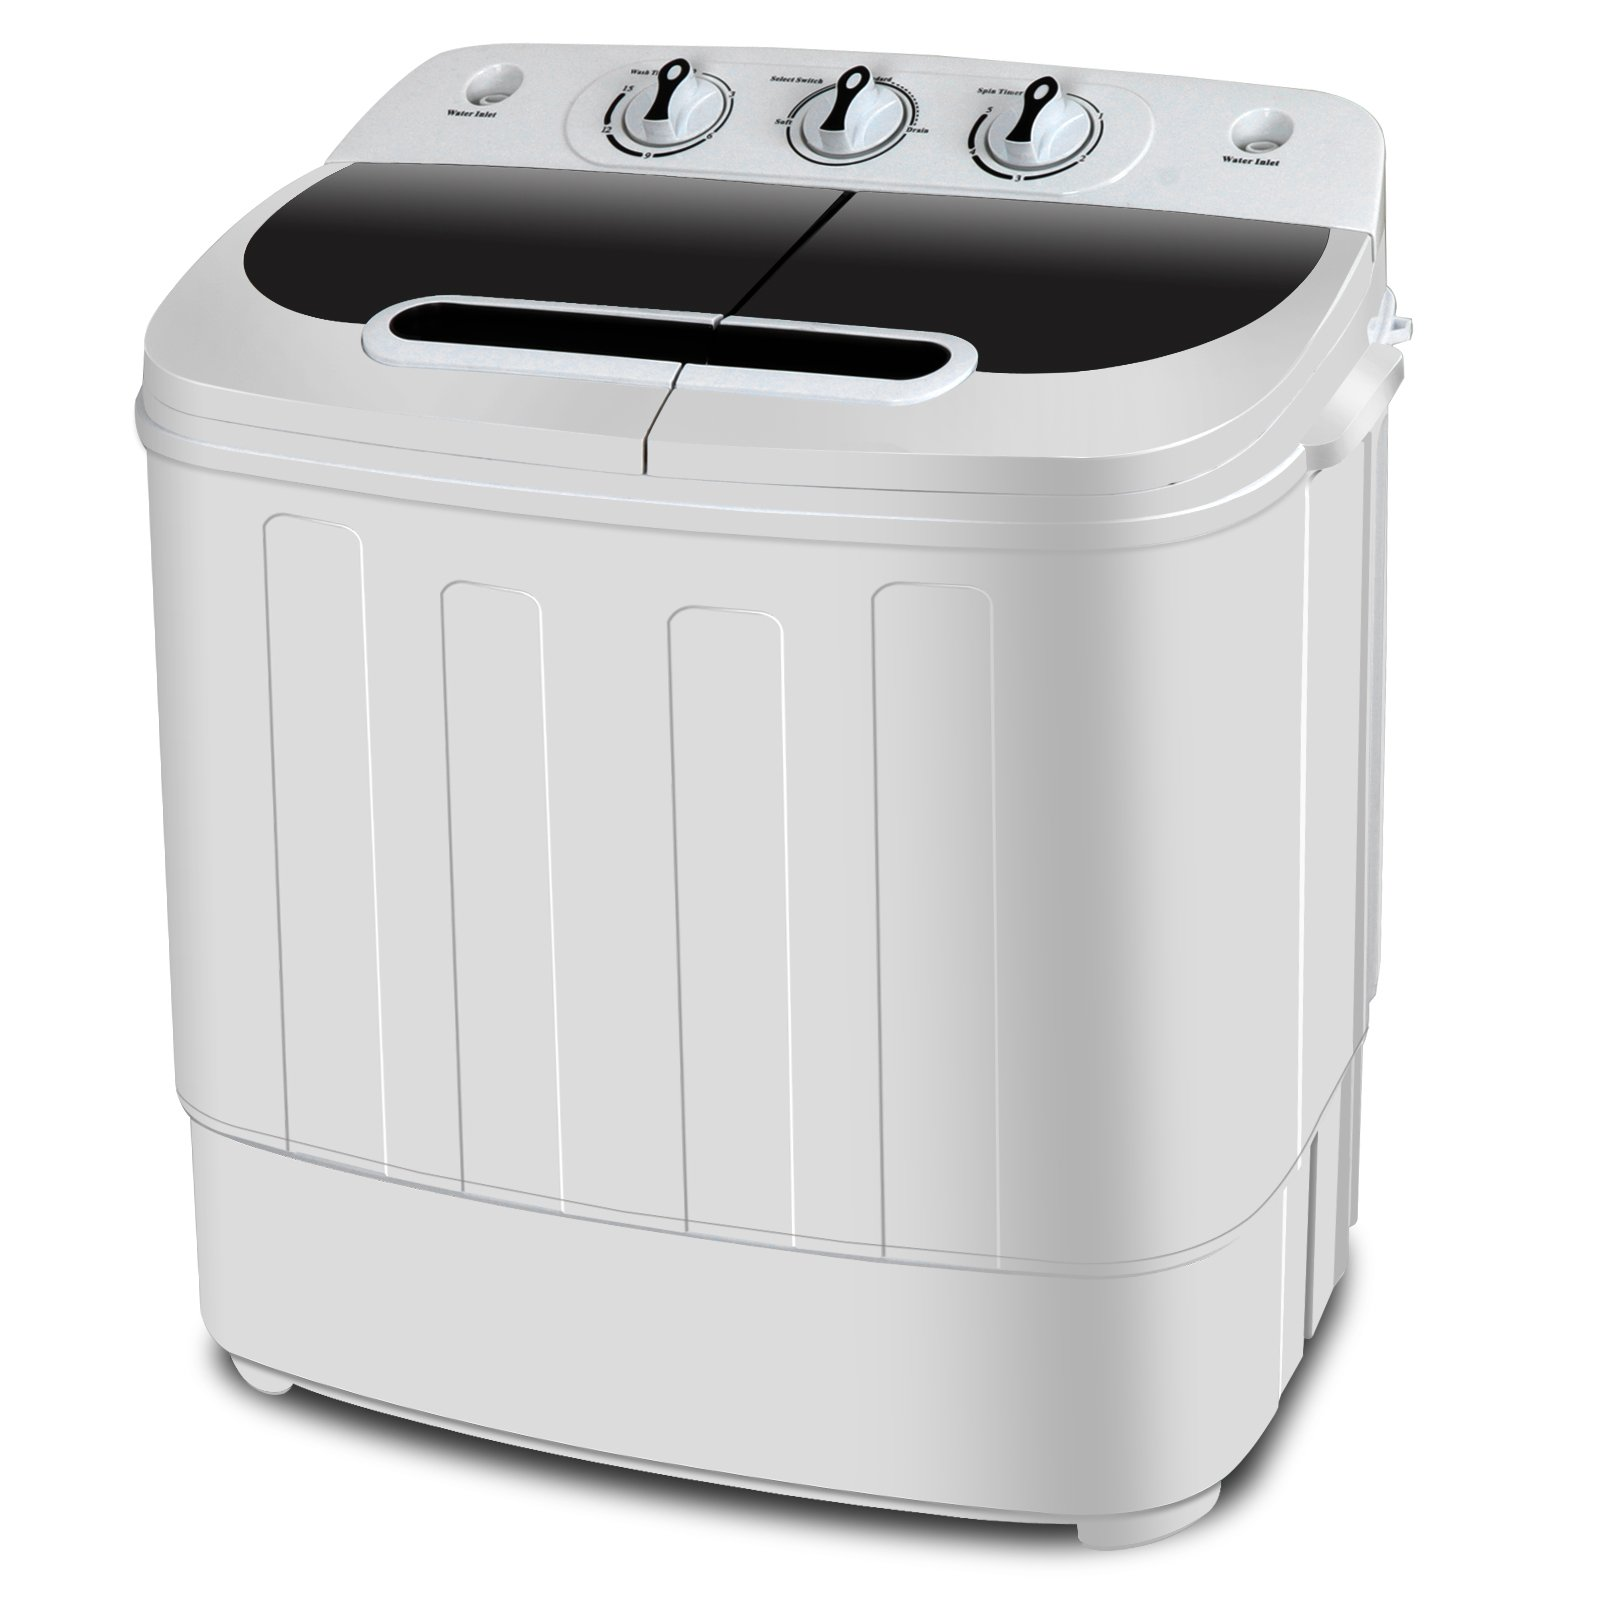 SUPER DEAL Portable Washer Mini Twin Tub Washing Machine w/Washer&Spinner, Gravity Drain Pump, 13lbs Capacity For Camping, Apartments, Dorms, College Rooms, RV's, Delicates and more